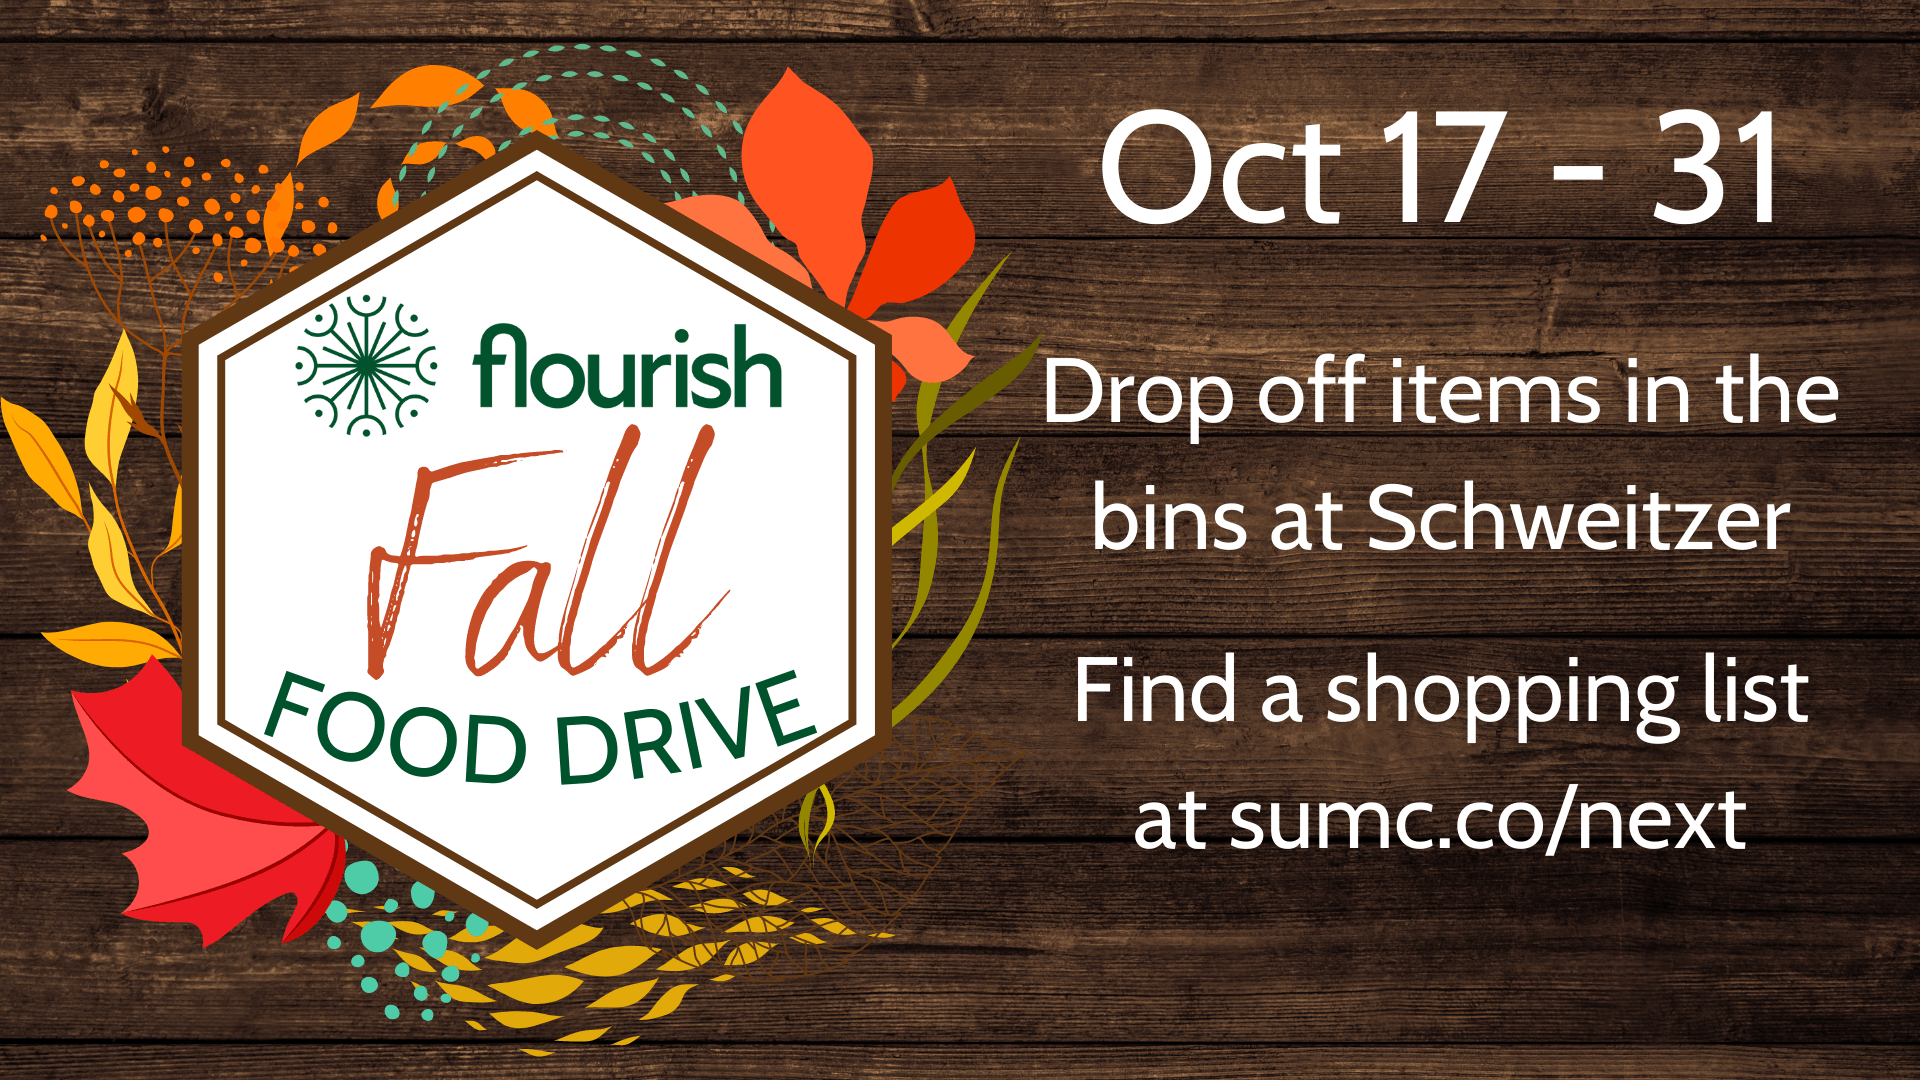 Promotional Graphic for Flourish Fall Food Drive